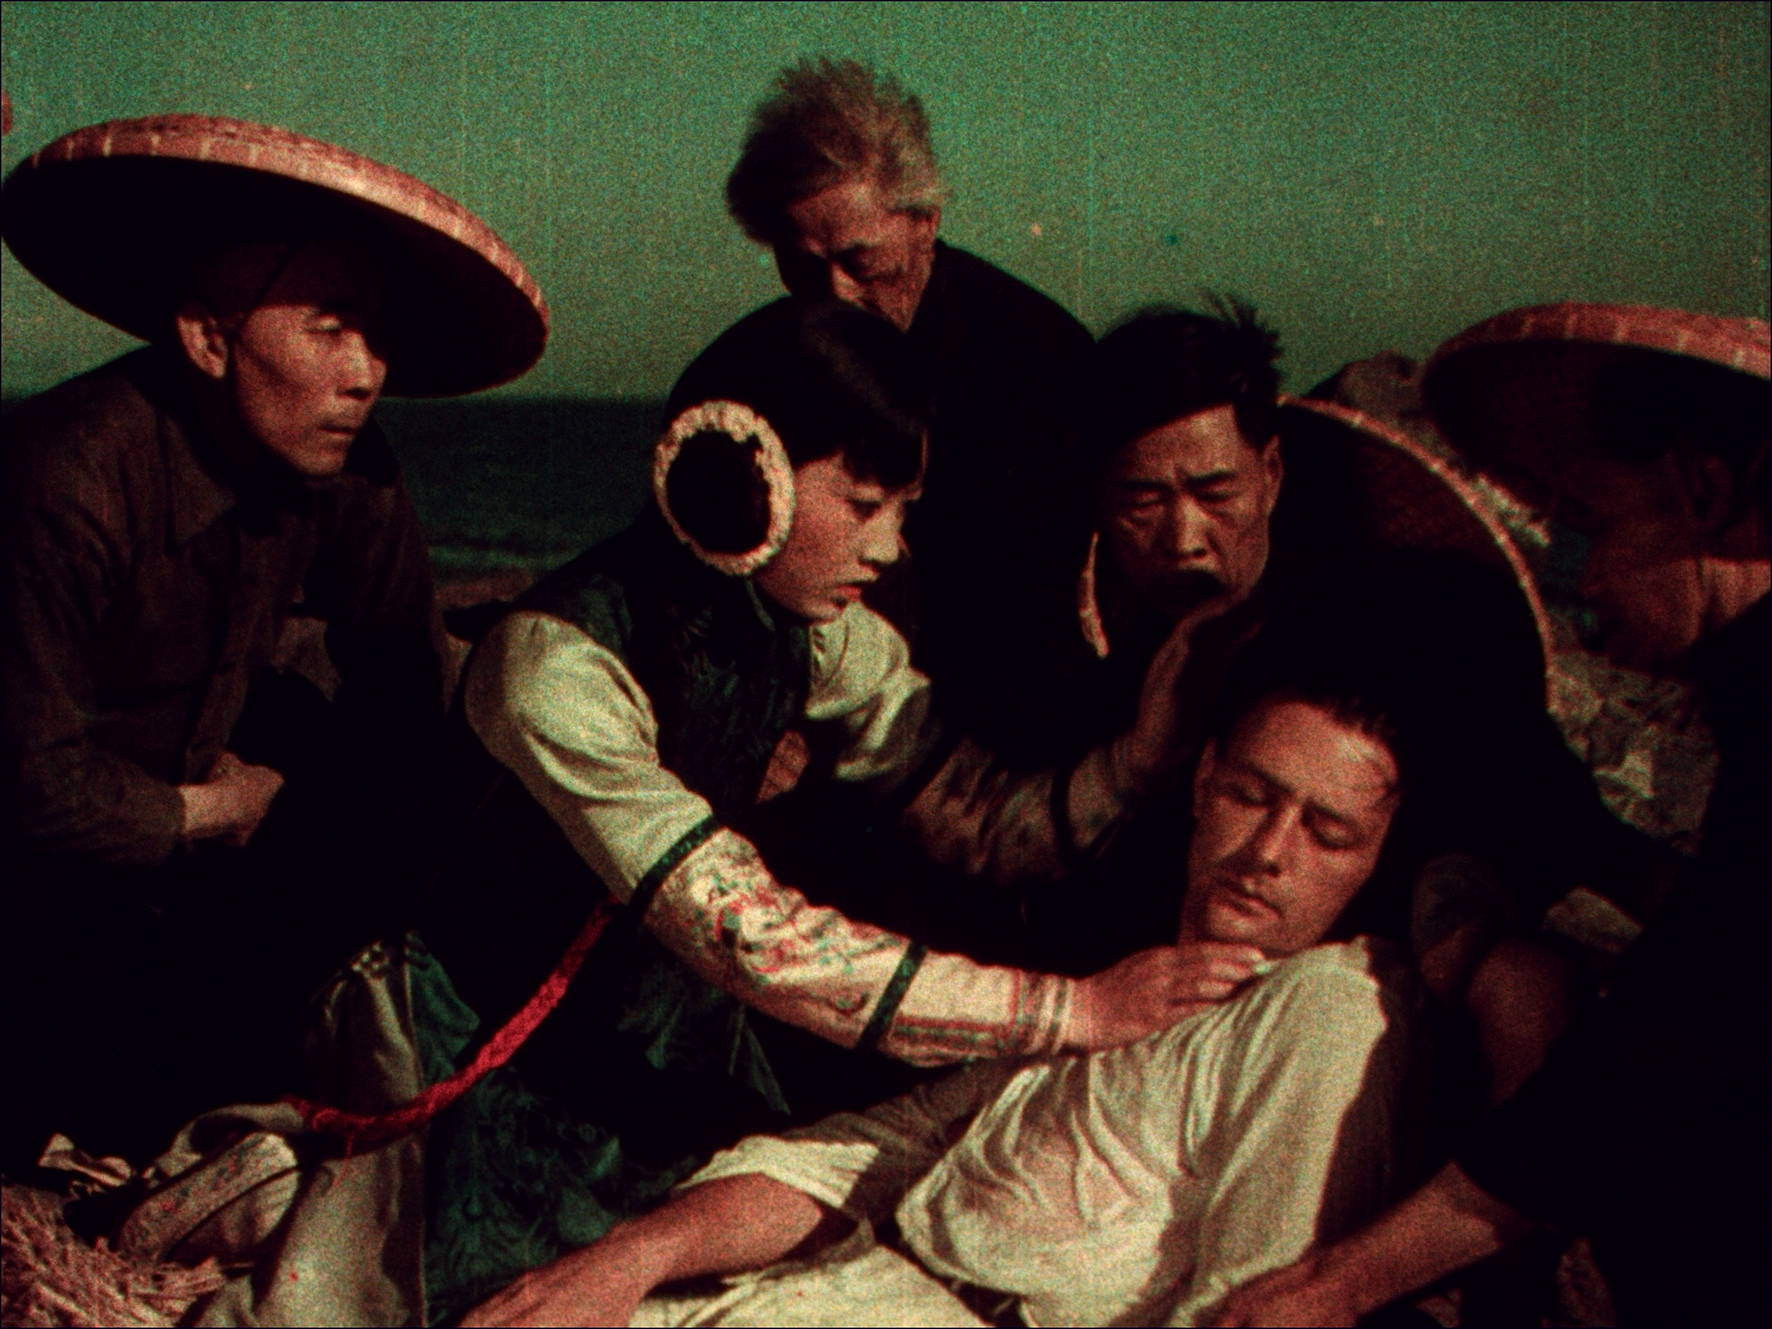 The Toll of the Sea (1922)